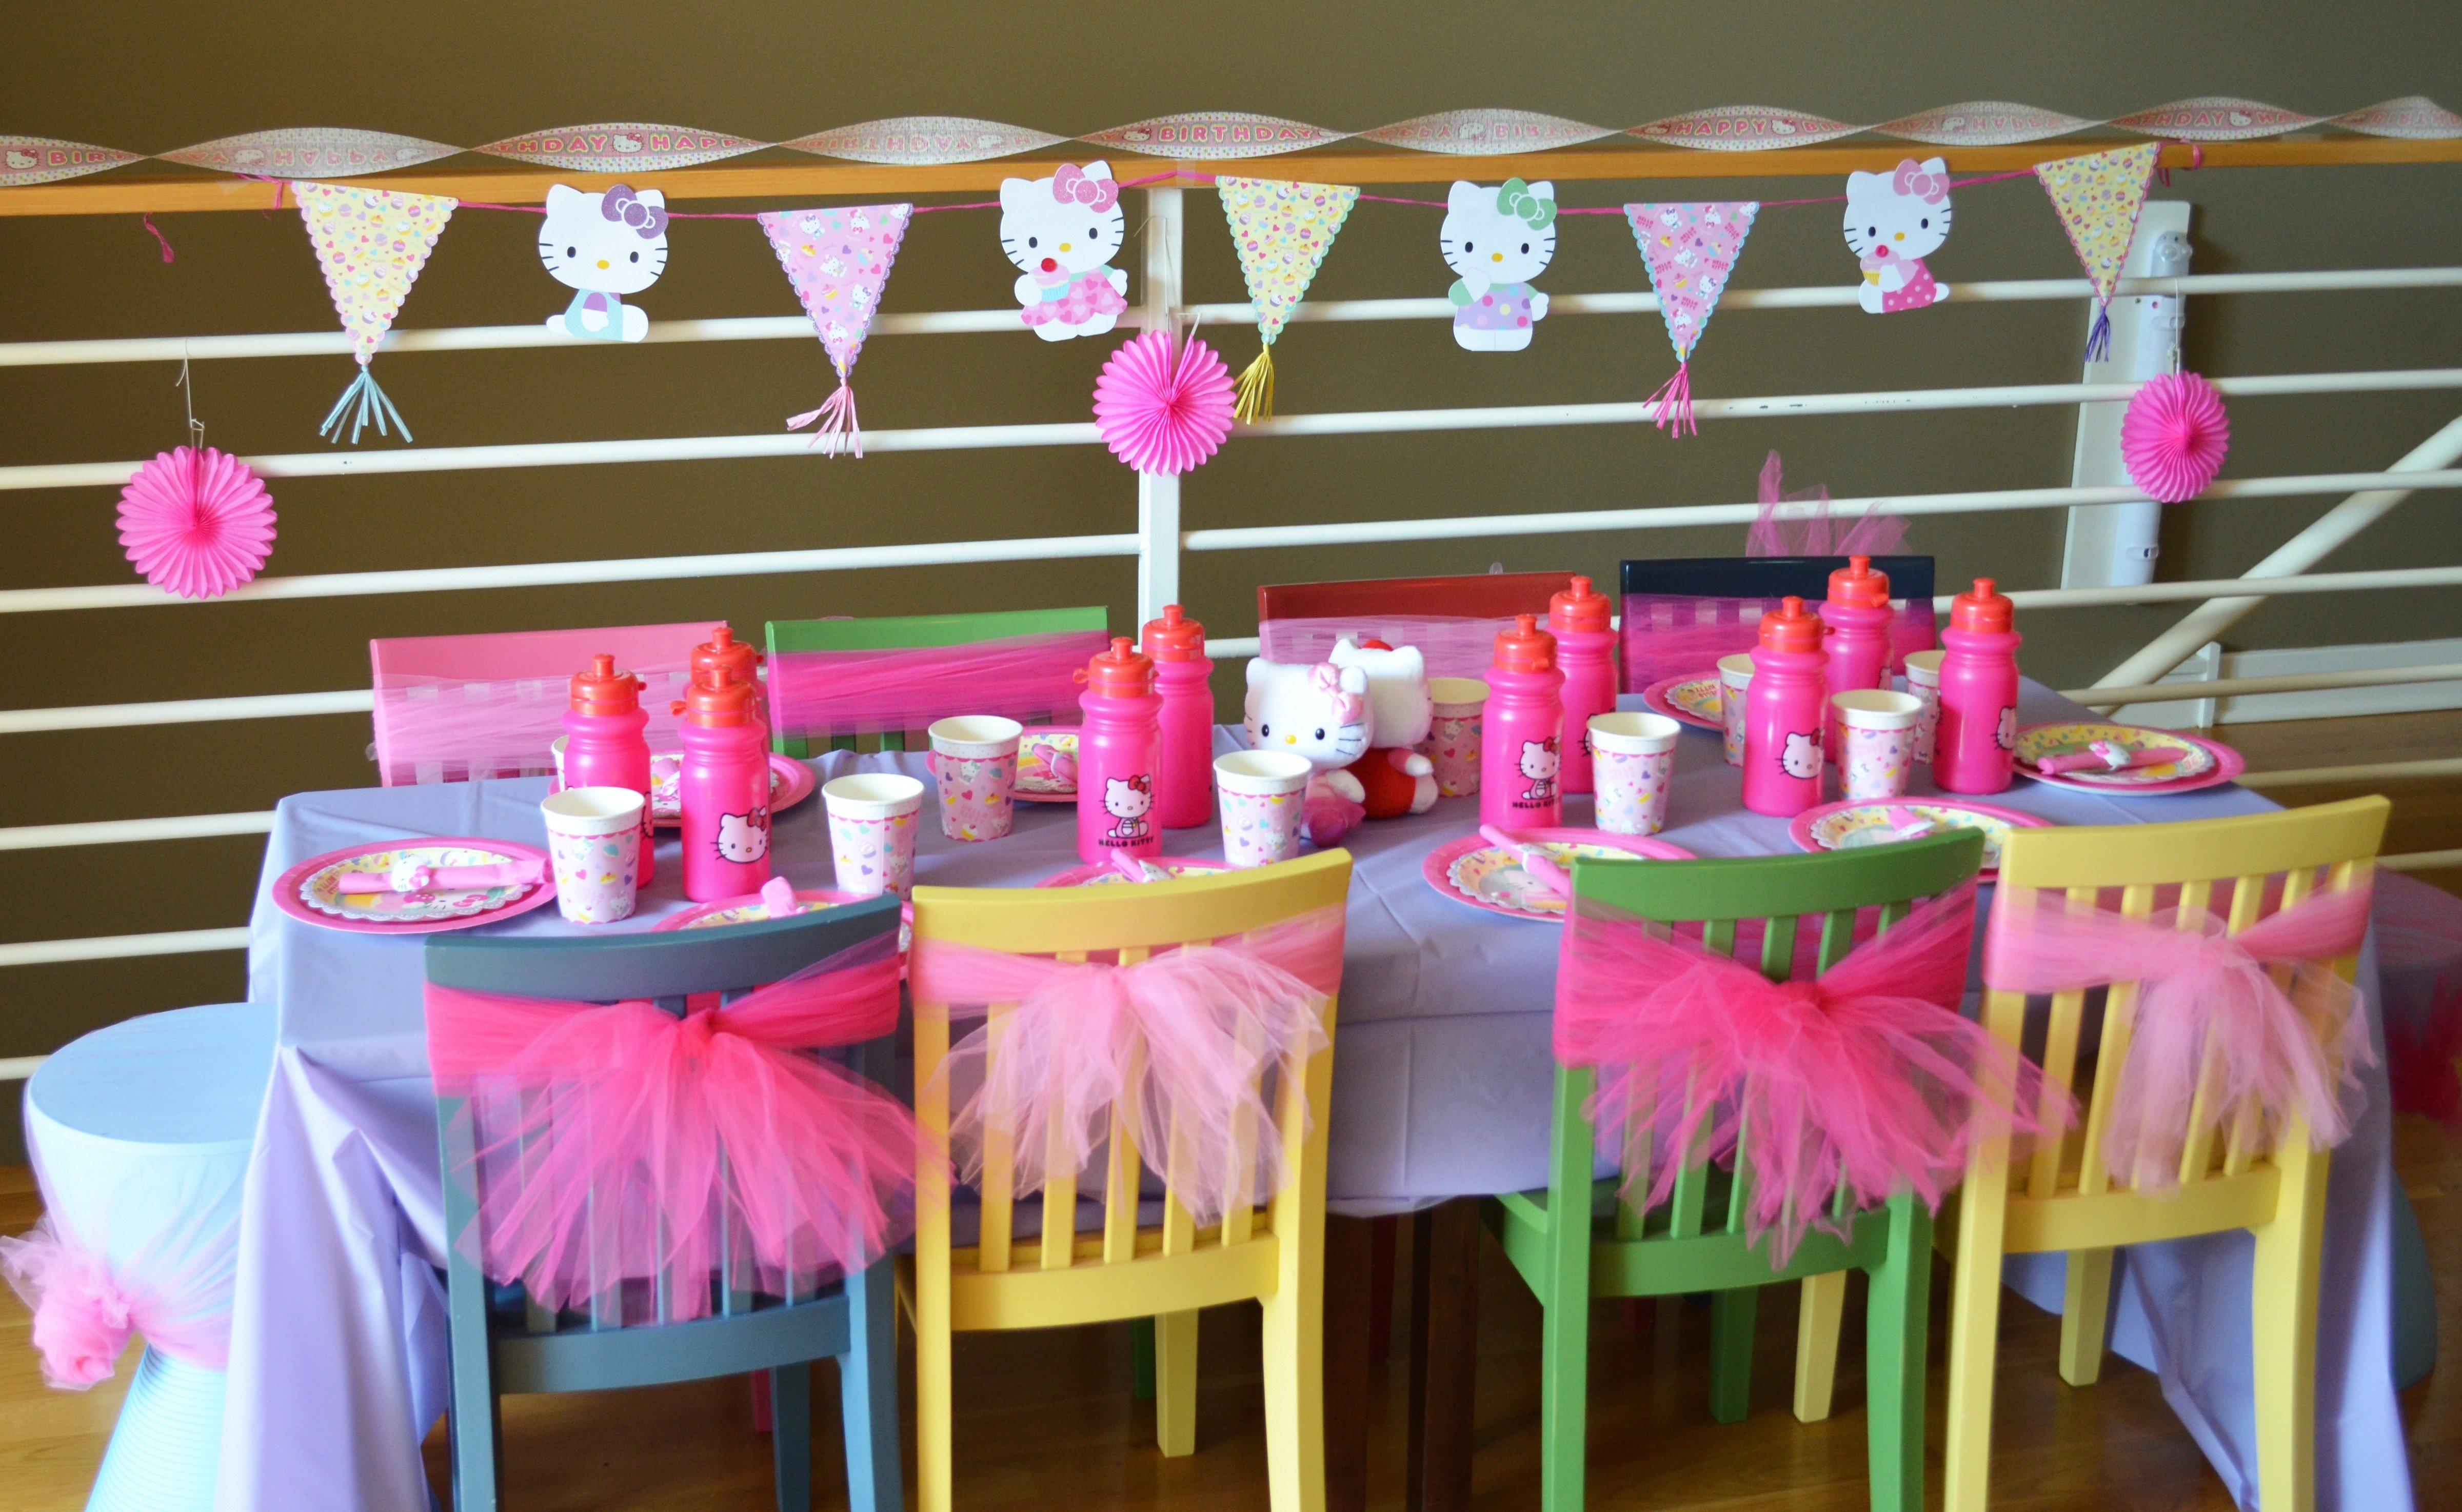 10 Best Ideas For 3 Year Old Birthday 27 cute models regarding 3 year old birthday party that you shouldn 3 2020